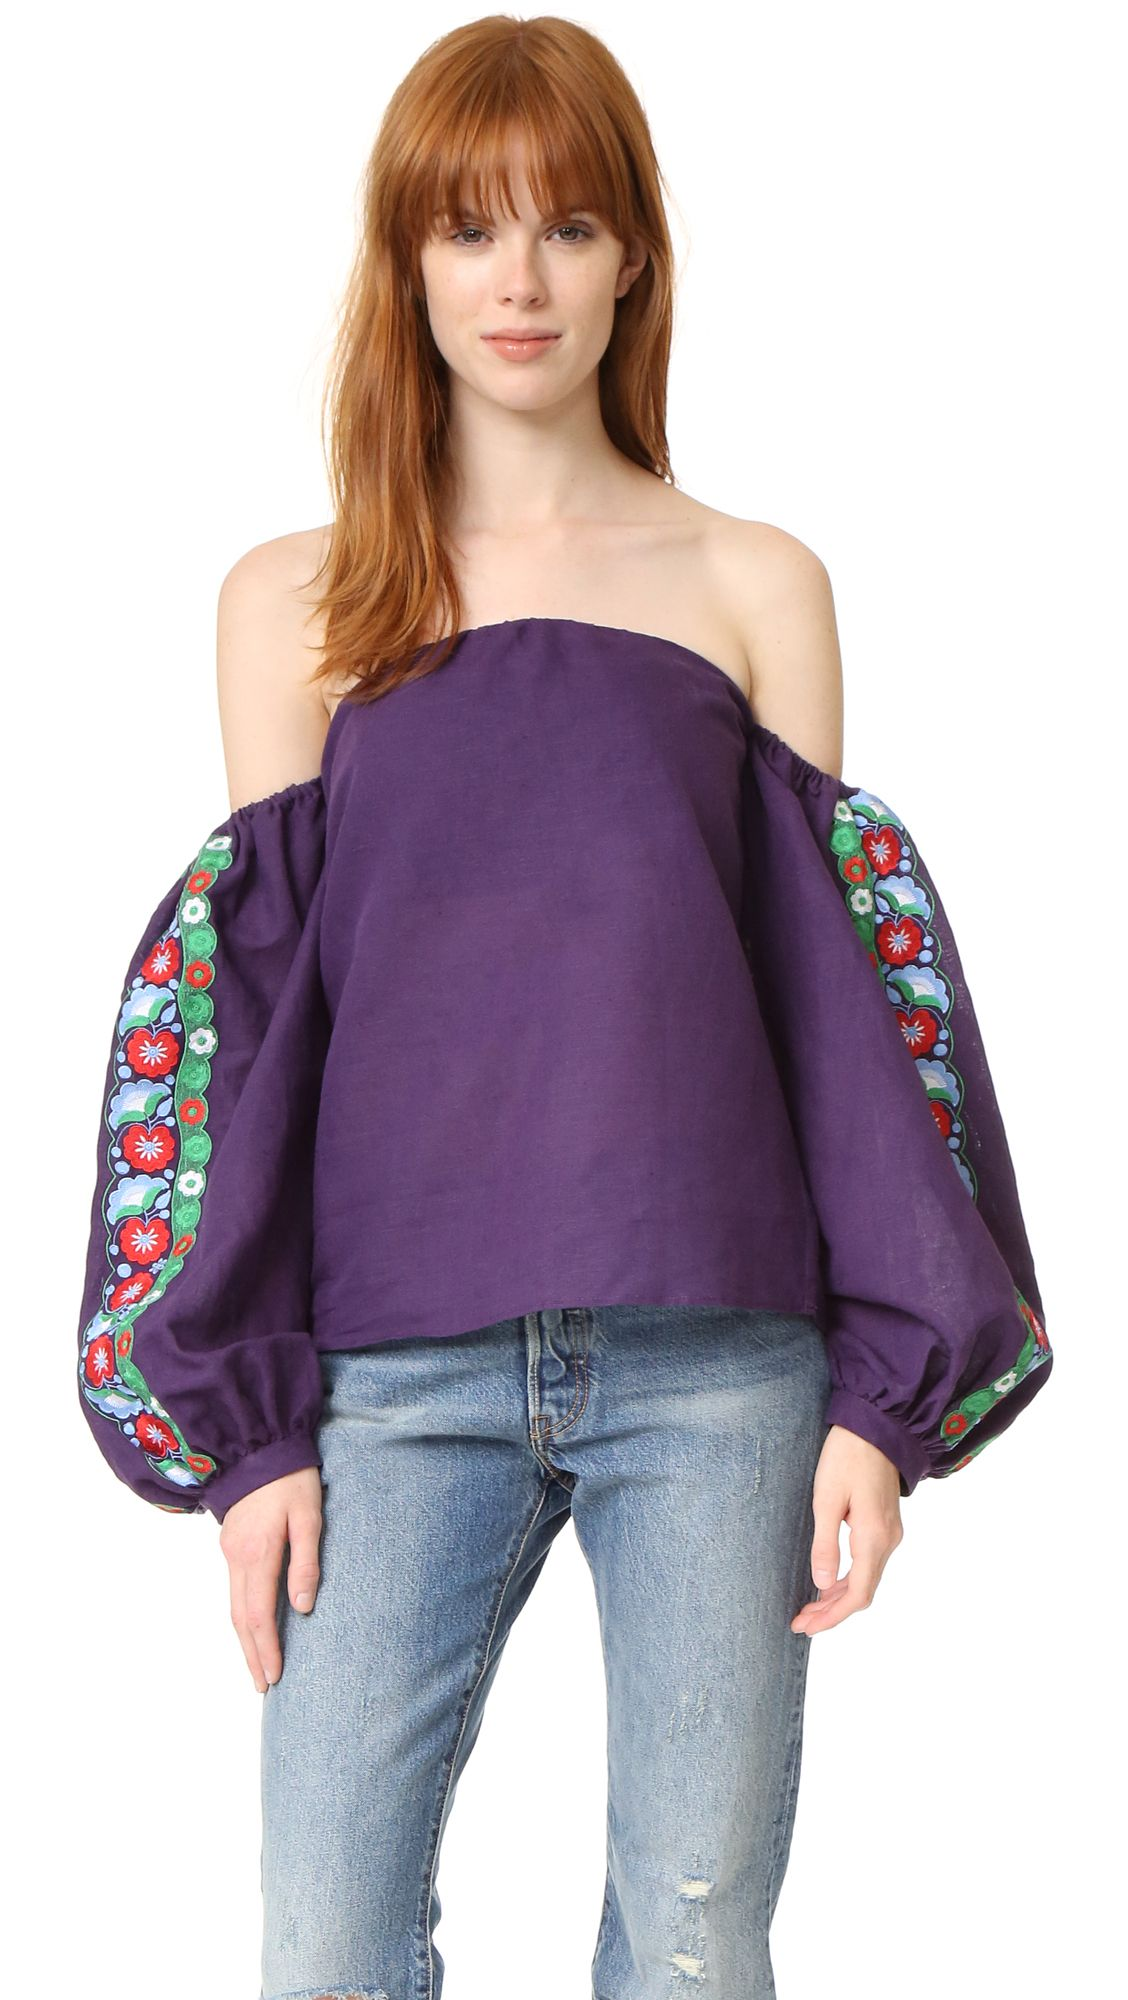 ¡Cómpralo ya!. One By Lazuli Embroidered Off The Shoulder Top - Purple Blue. Description LAZULI is part of Shopbop's ONE by collection, and all of its pieces are handmade in Ecuador. ONE by is home to exceptional pieces from established and emerging designers. Embroidery brings eclectic style to this swingy LAZULI blouse. Elastic cinches the off shoulder neckline. Bishop sleeves. Fabric: Silk linen. 100% silk. Dry clean. Imported, Ecuador. Measurements Length: 19.75in / 50cm, from center…